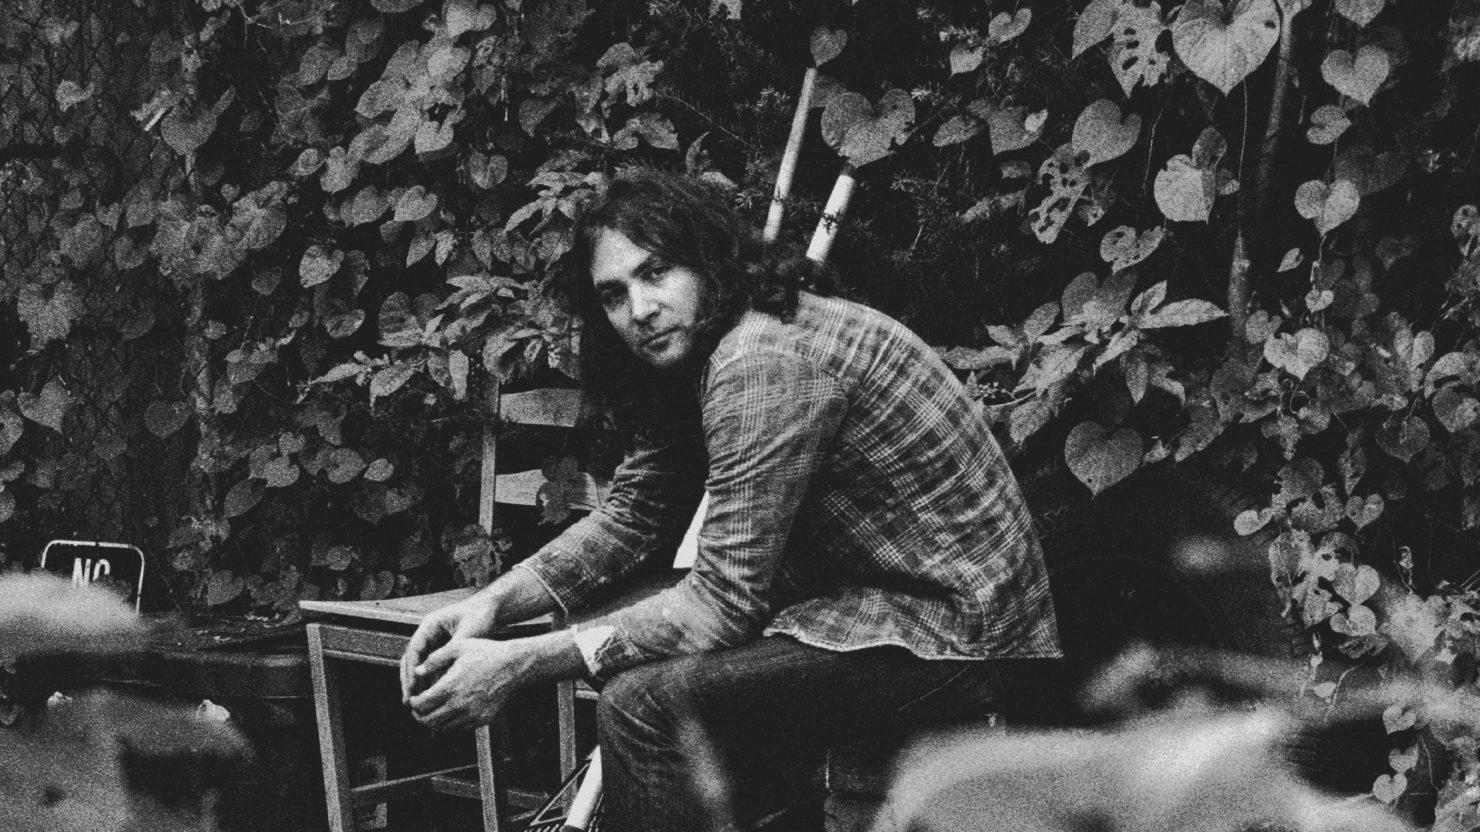 The War On Drugs Shares New Single Thinking Of A Place